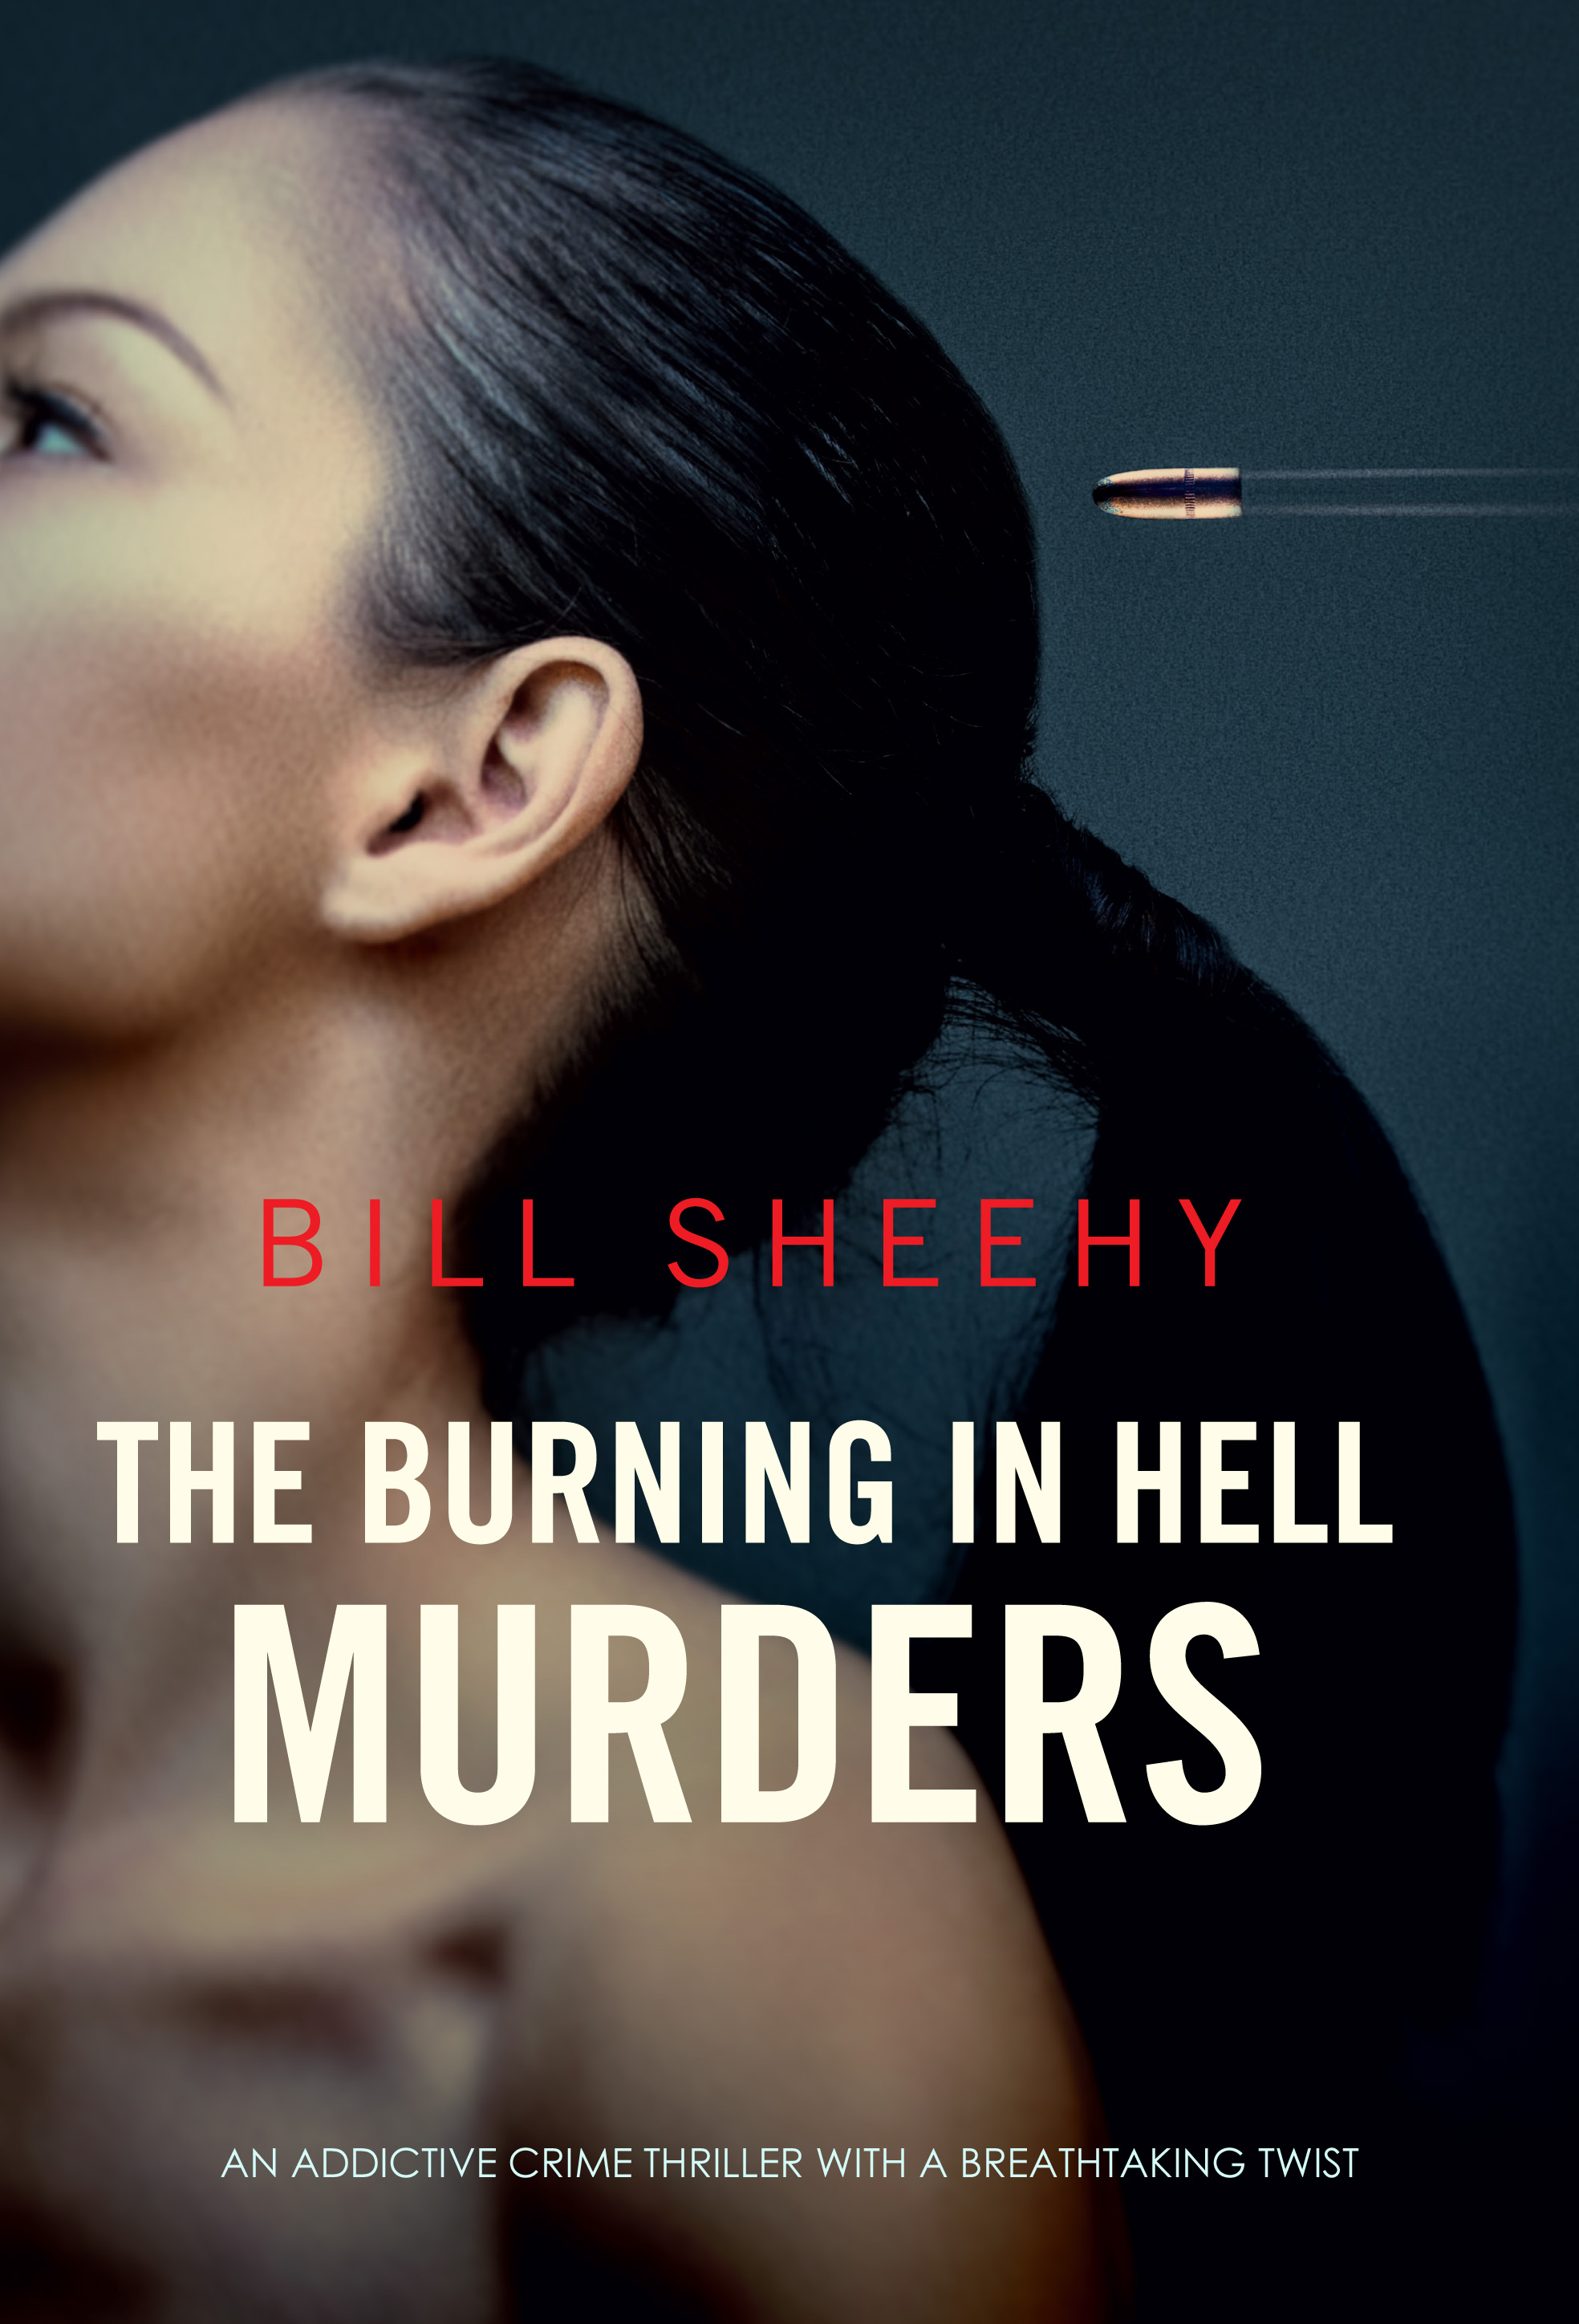 The Burning in Hell Murders publish.jpg